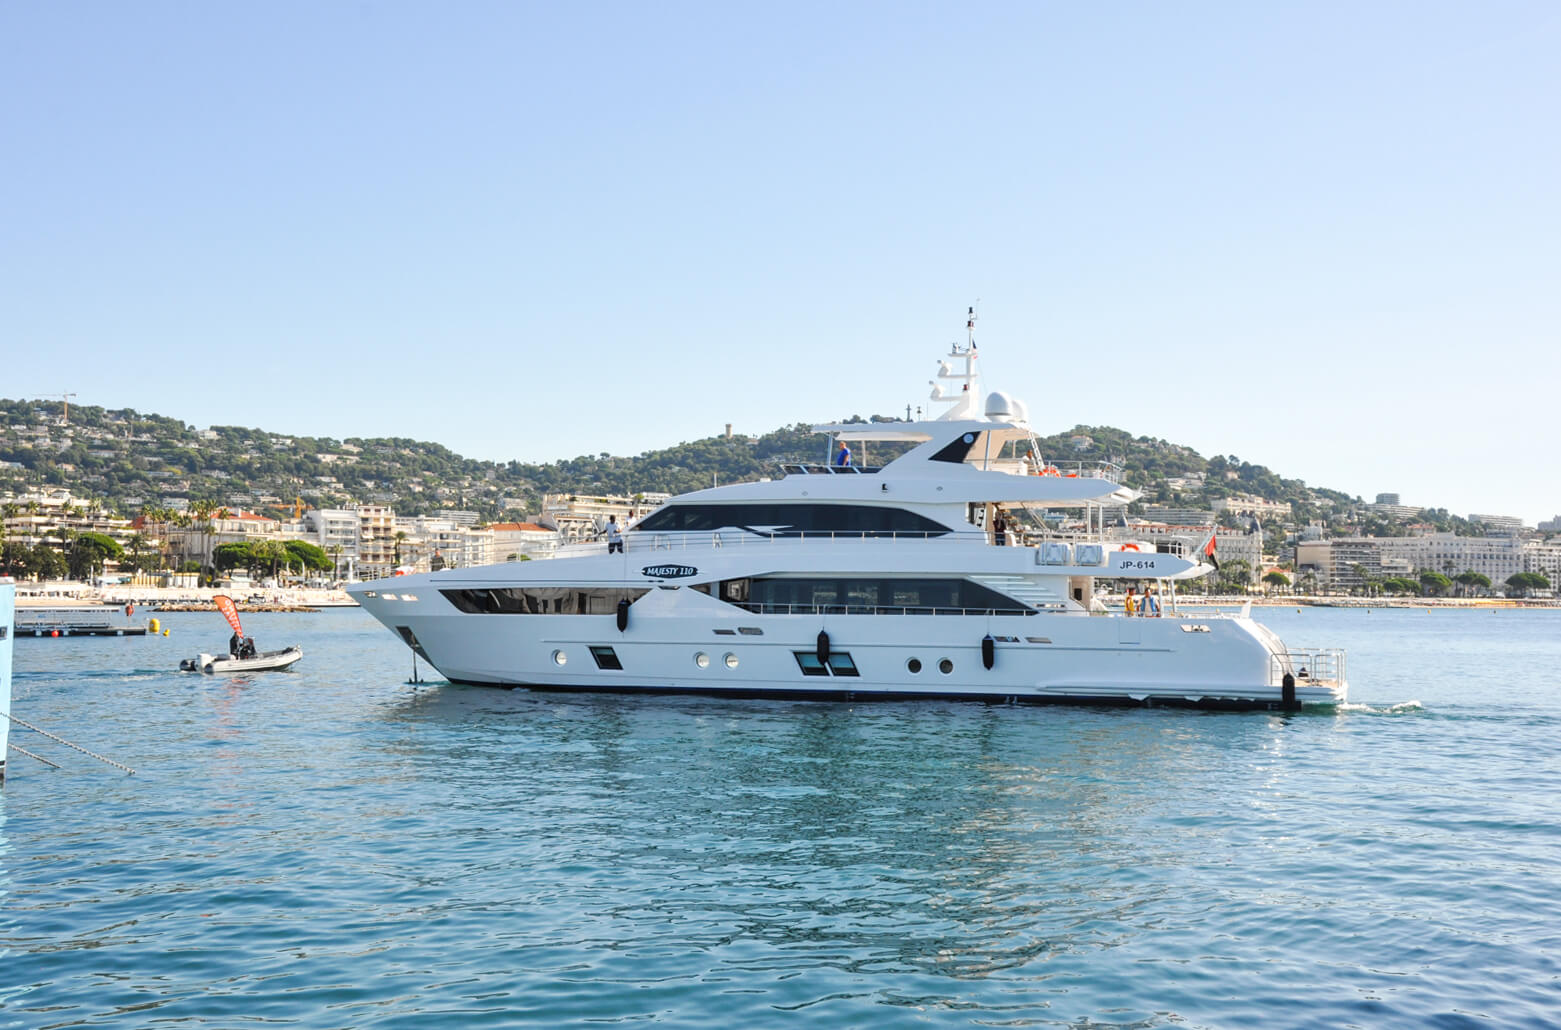 Gulf Craft - Majesty 110 at Cannes Yachting Festival